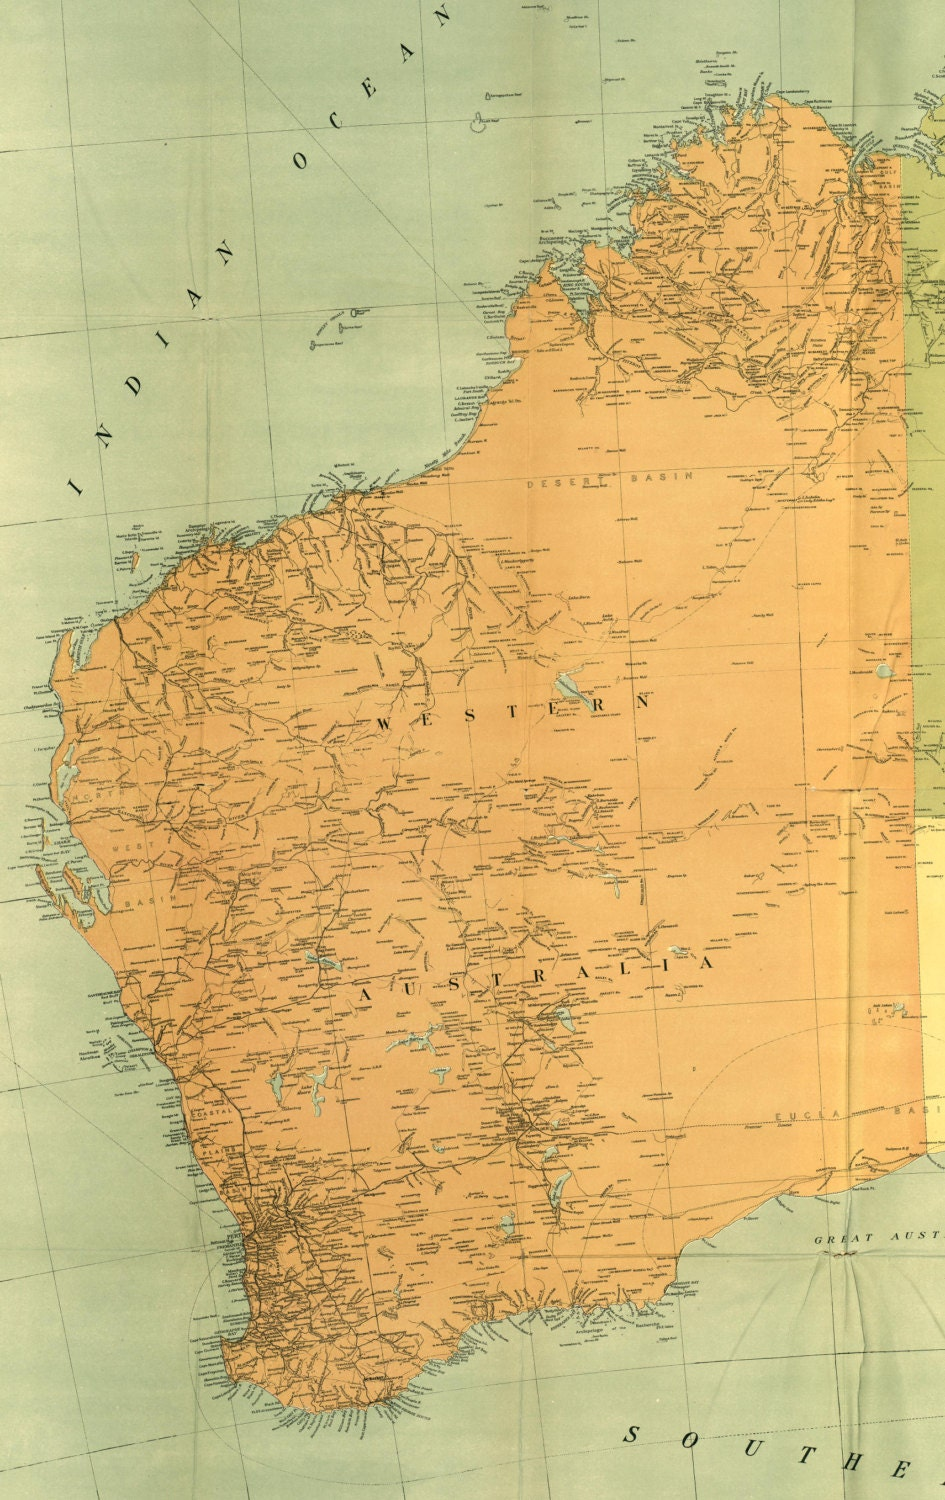 Australia 1916 western australia maps world map old world request a custom order and have something made just for you gumiabroncs Choice Image